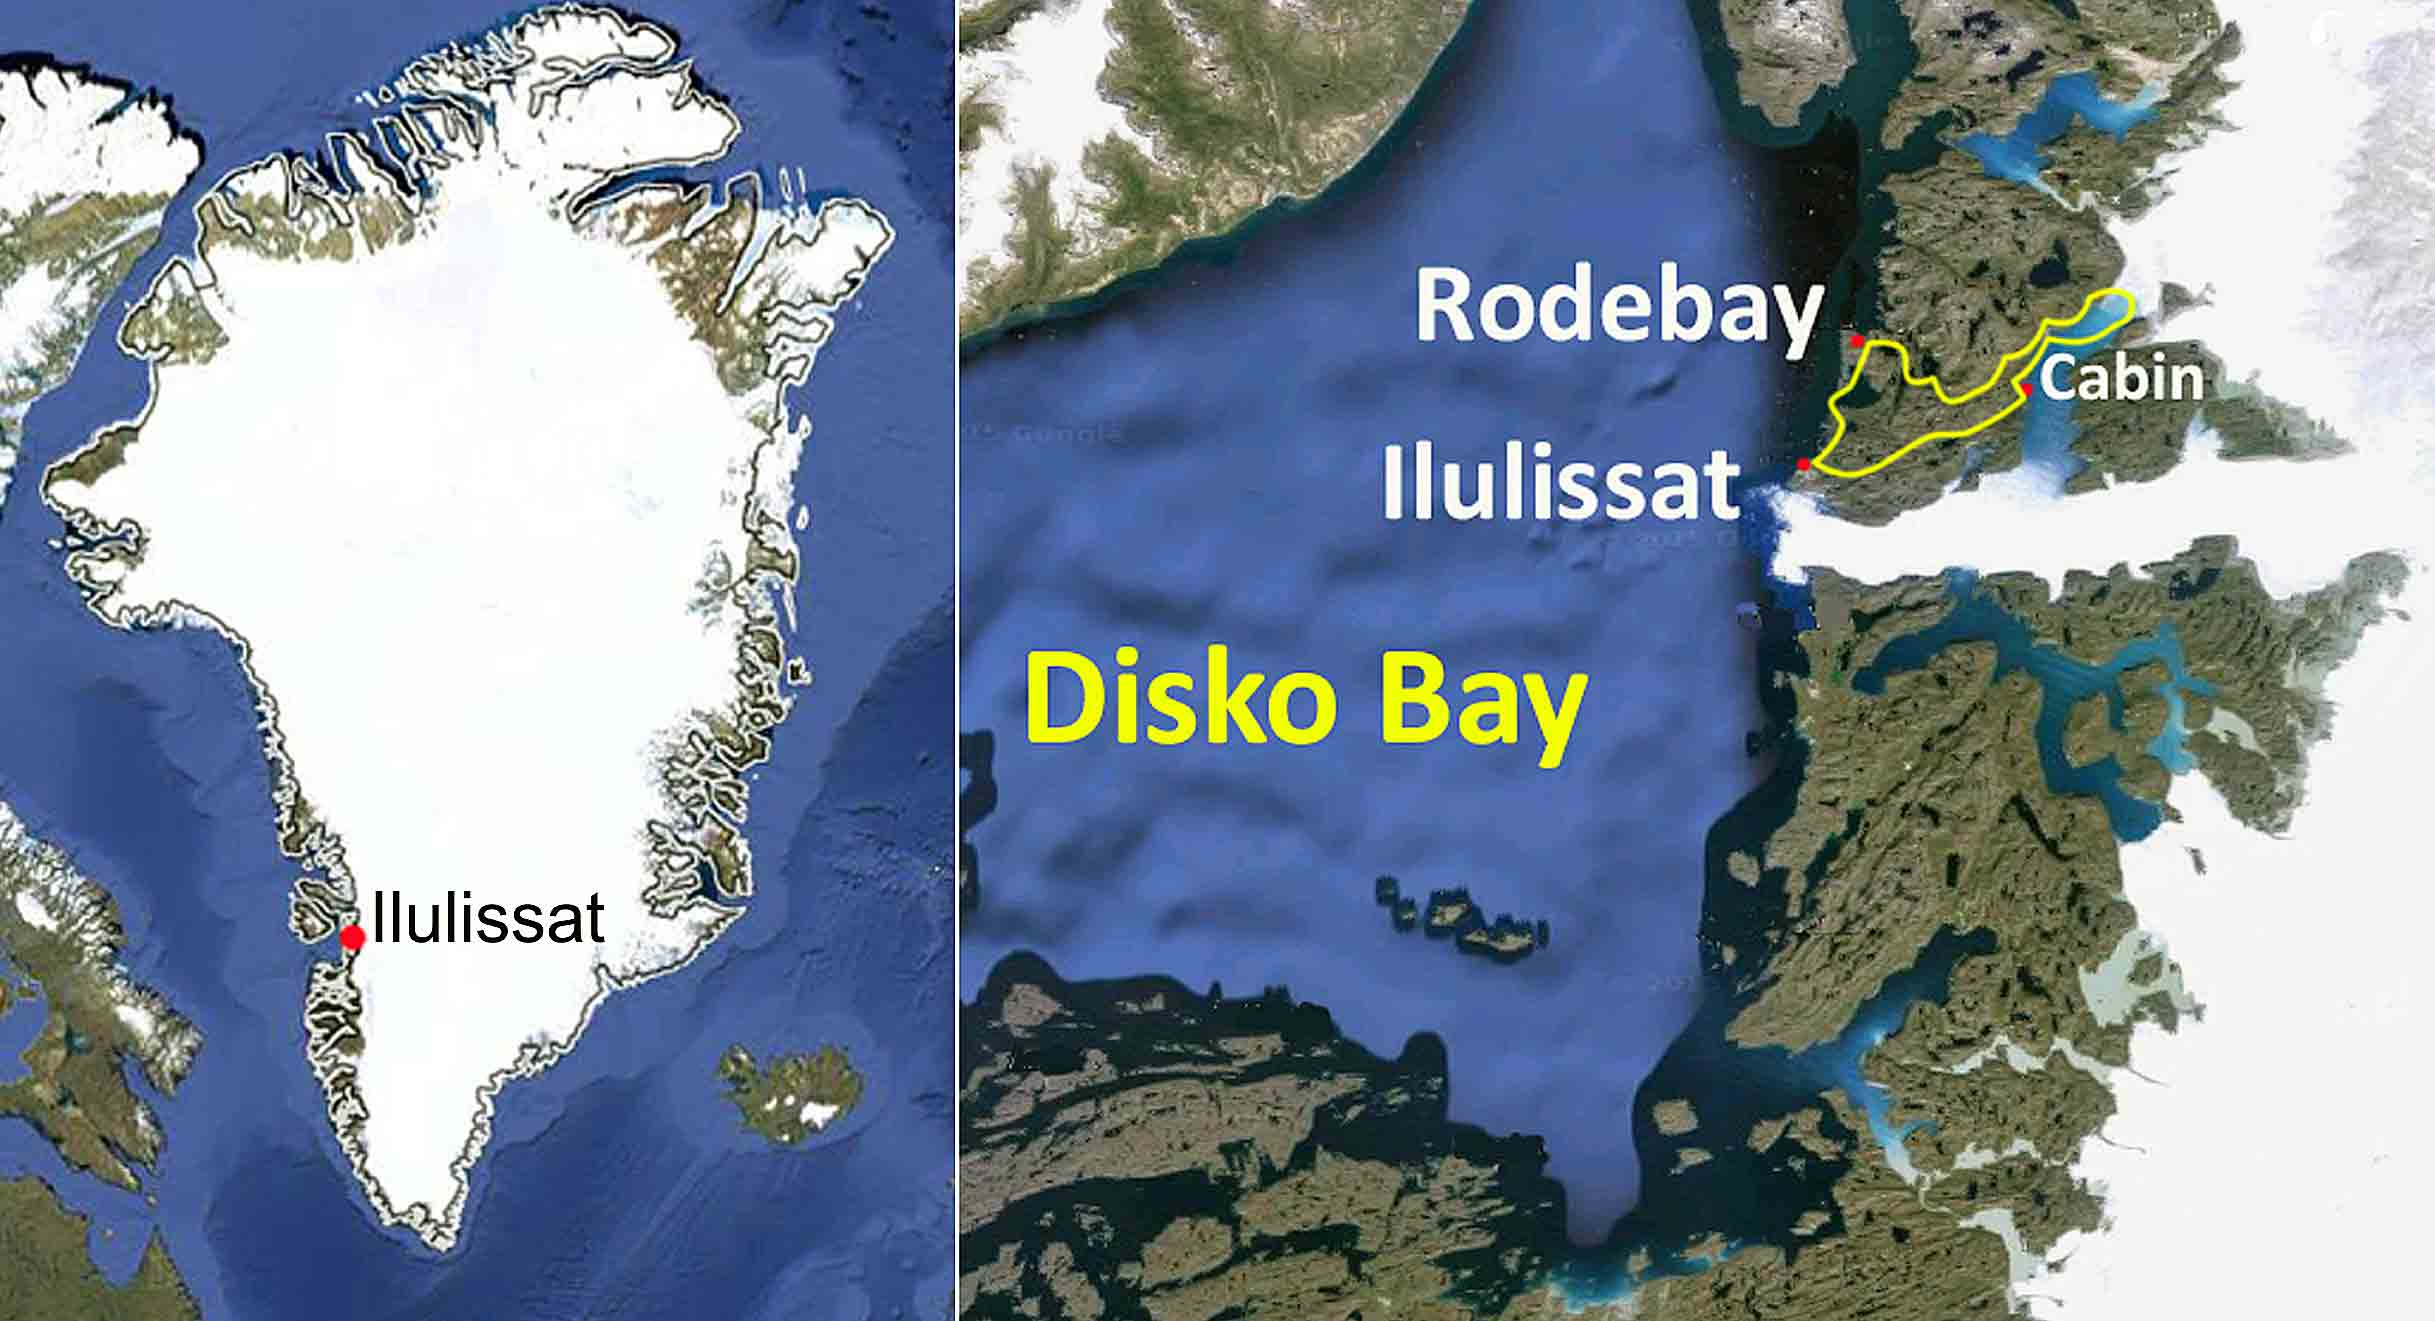 visit greenland in winter, Ilulissat dog sledding route map